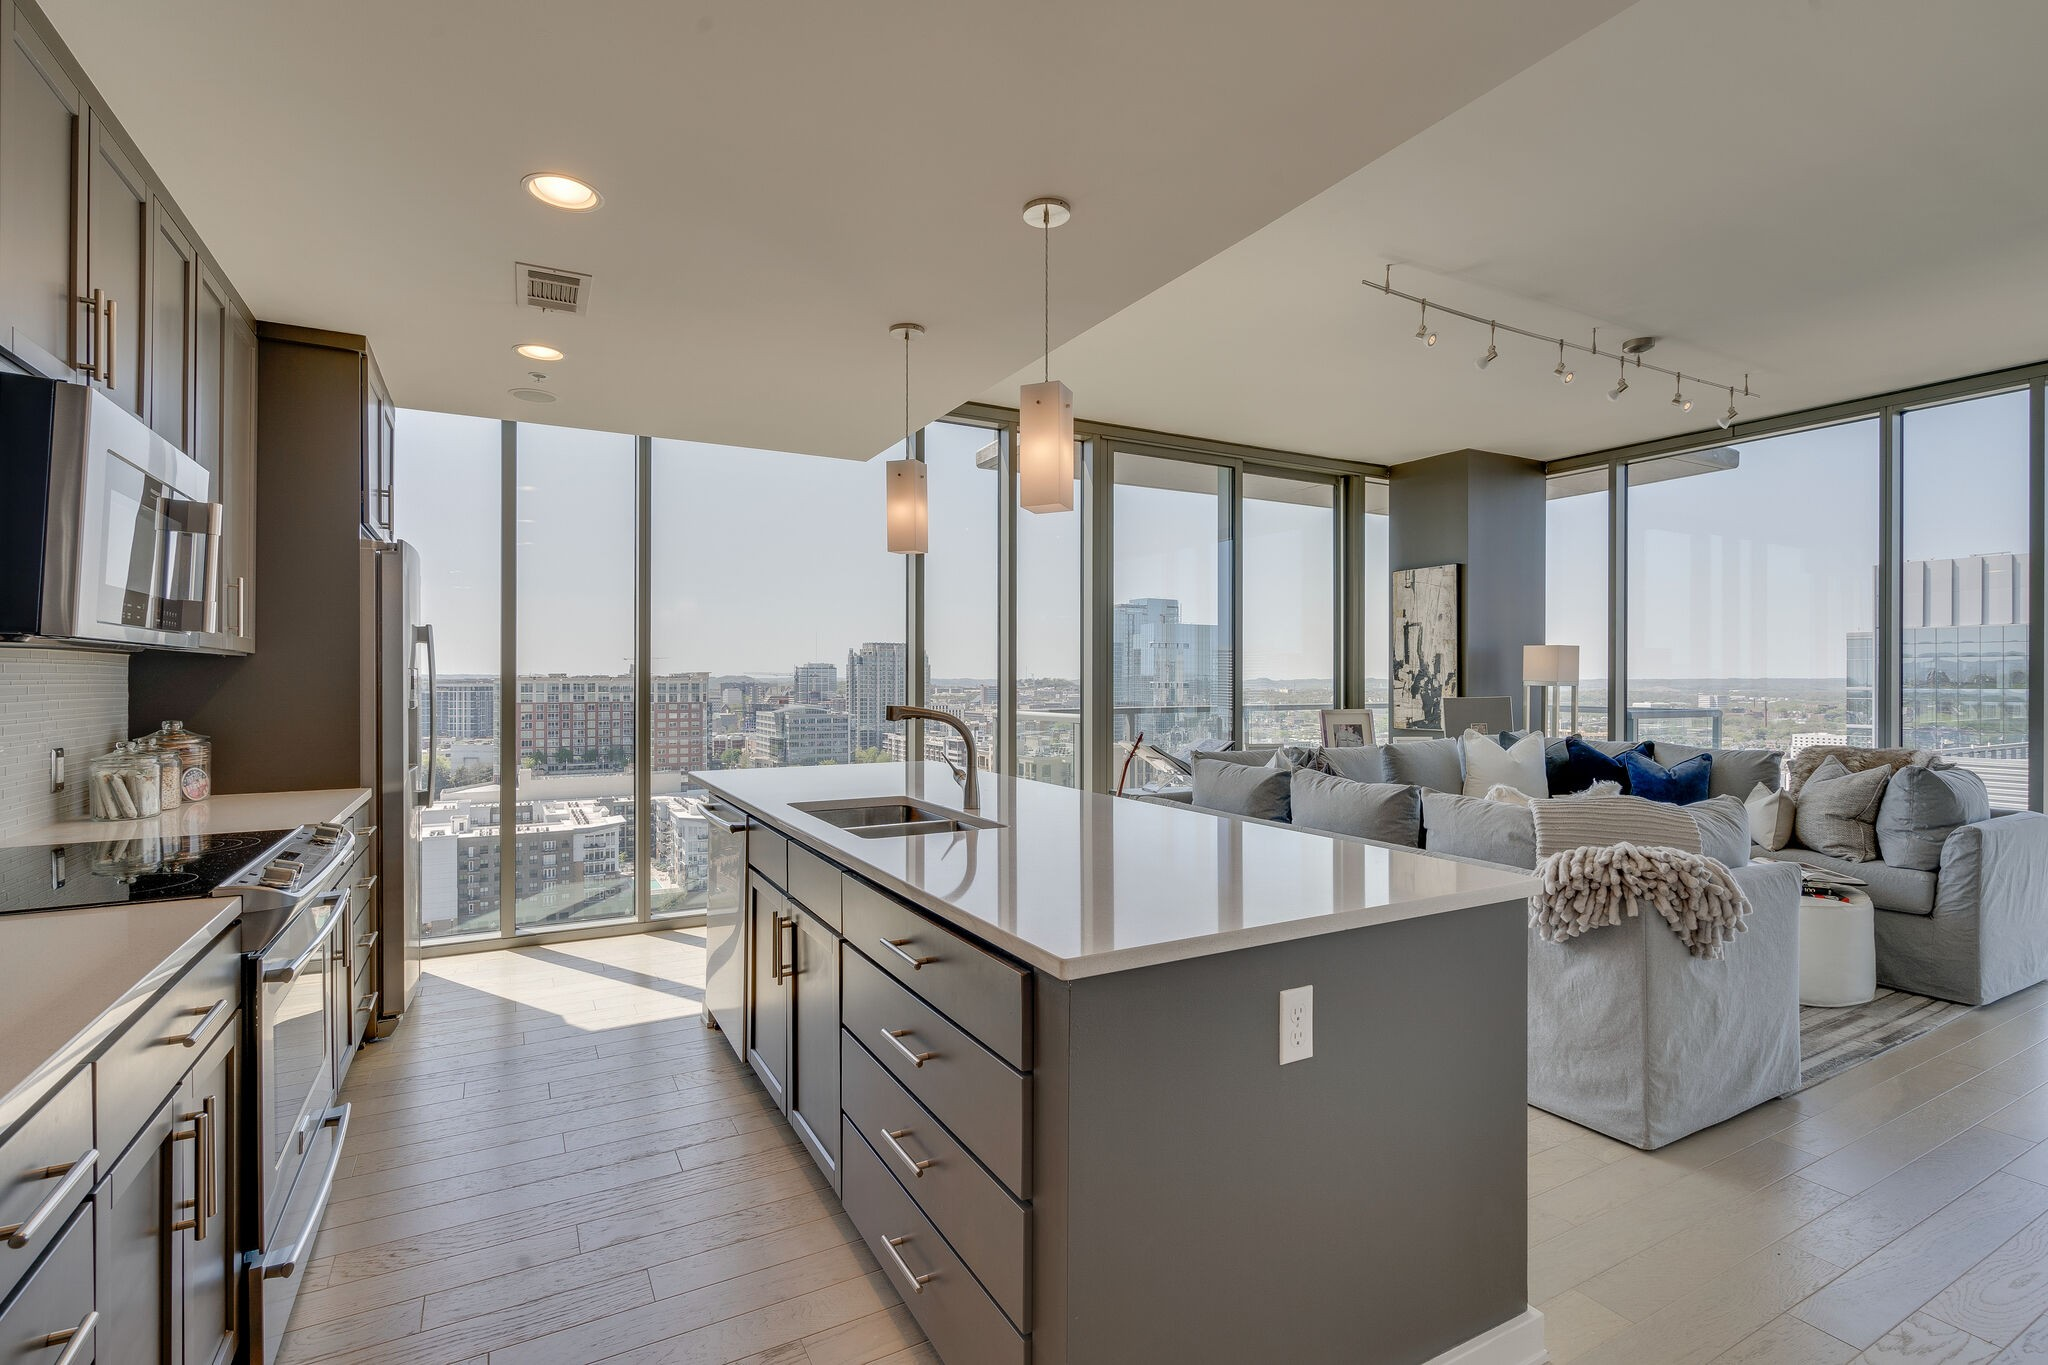 Fabulous corner unit in the Gulch w stunning views.  Original owner.  Pristine condition:  Hardwoods/tile throughout, custom closets, storage unit, 2 parking spots, salt water pool, hot tub, green roof, 24/7 security, fitness center, indoor dog walk & outdoor dog park.